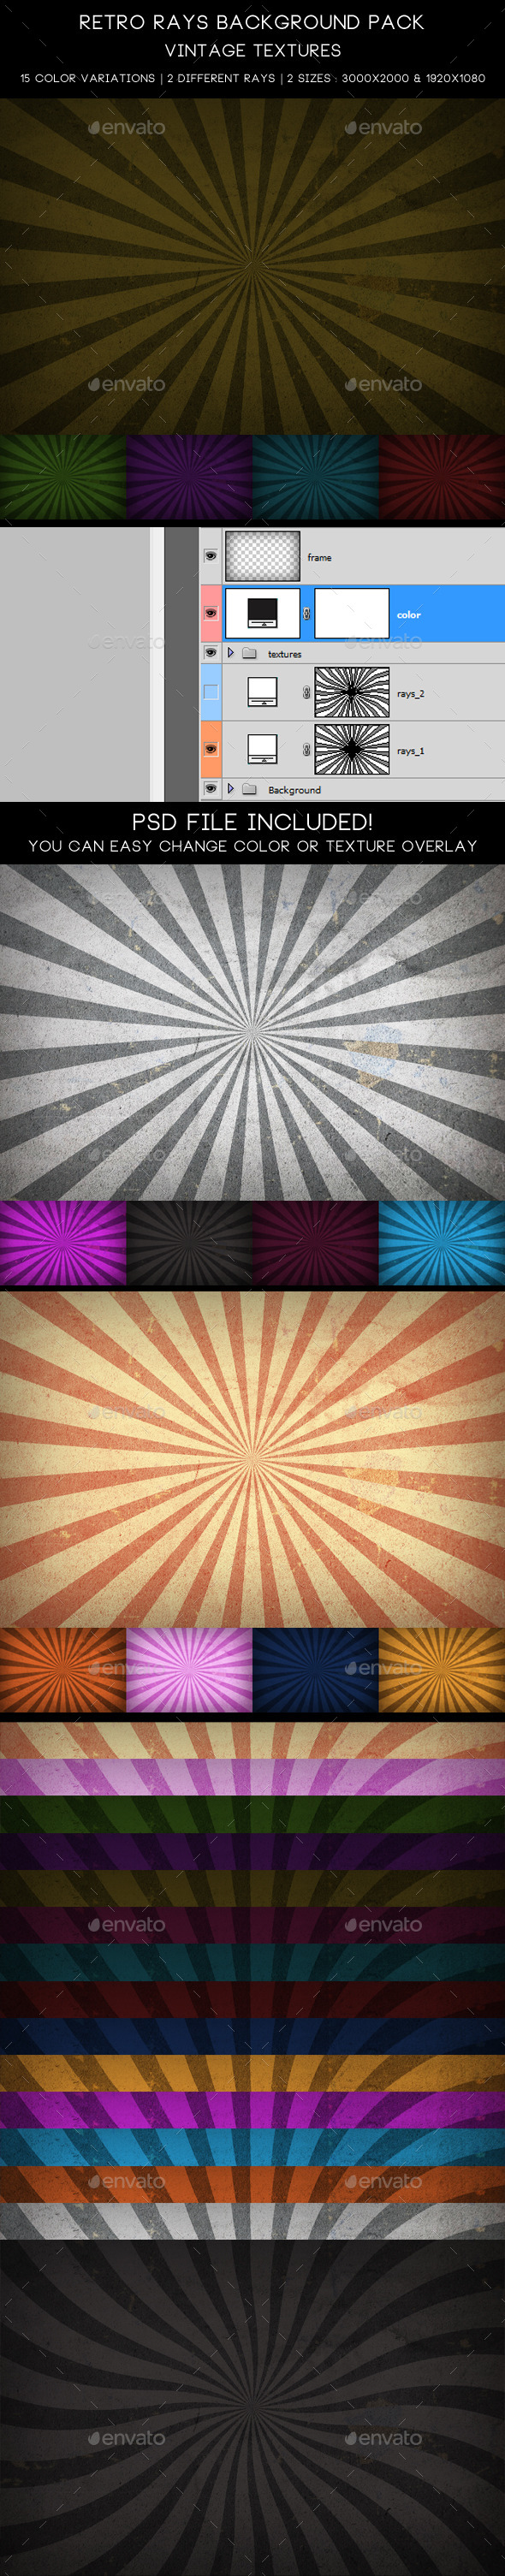 GraphicRiver Retro Rays Background Pack Vintage Textures 10439858